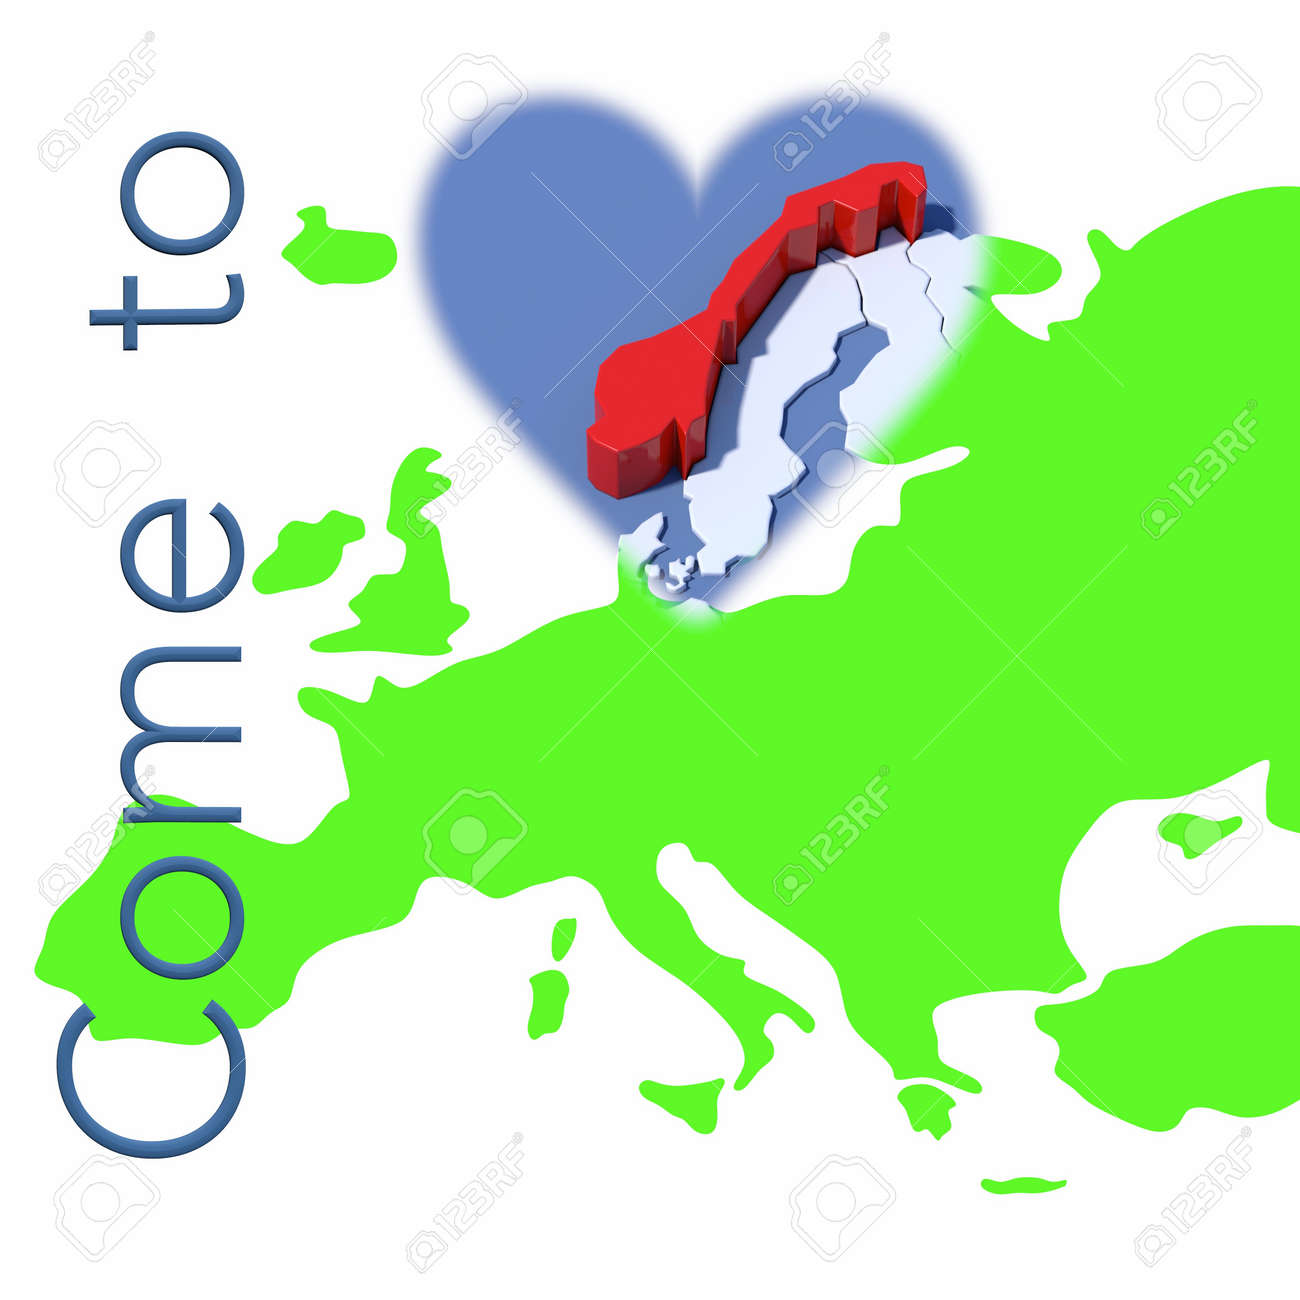 Norway On Europe Map.Come To Norway With Europe Map Stock Photo Picture And Royalty Free